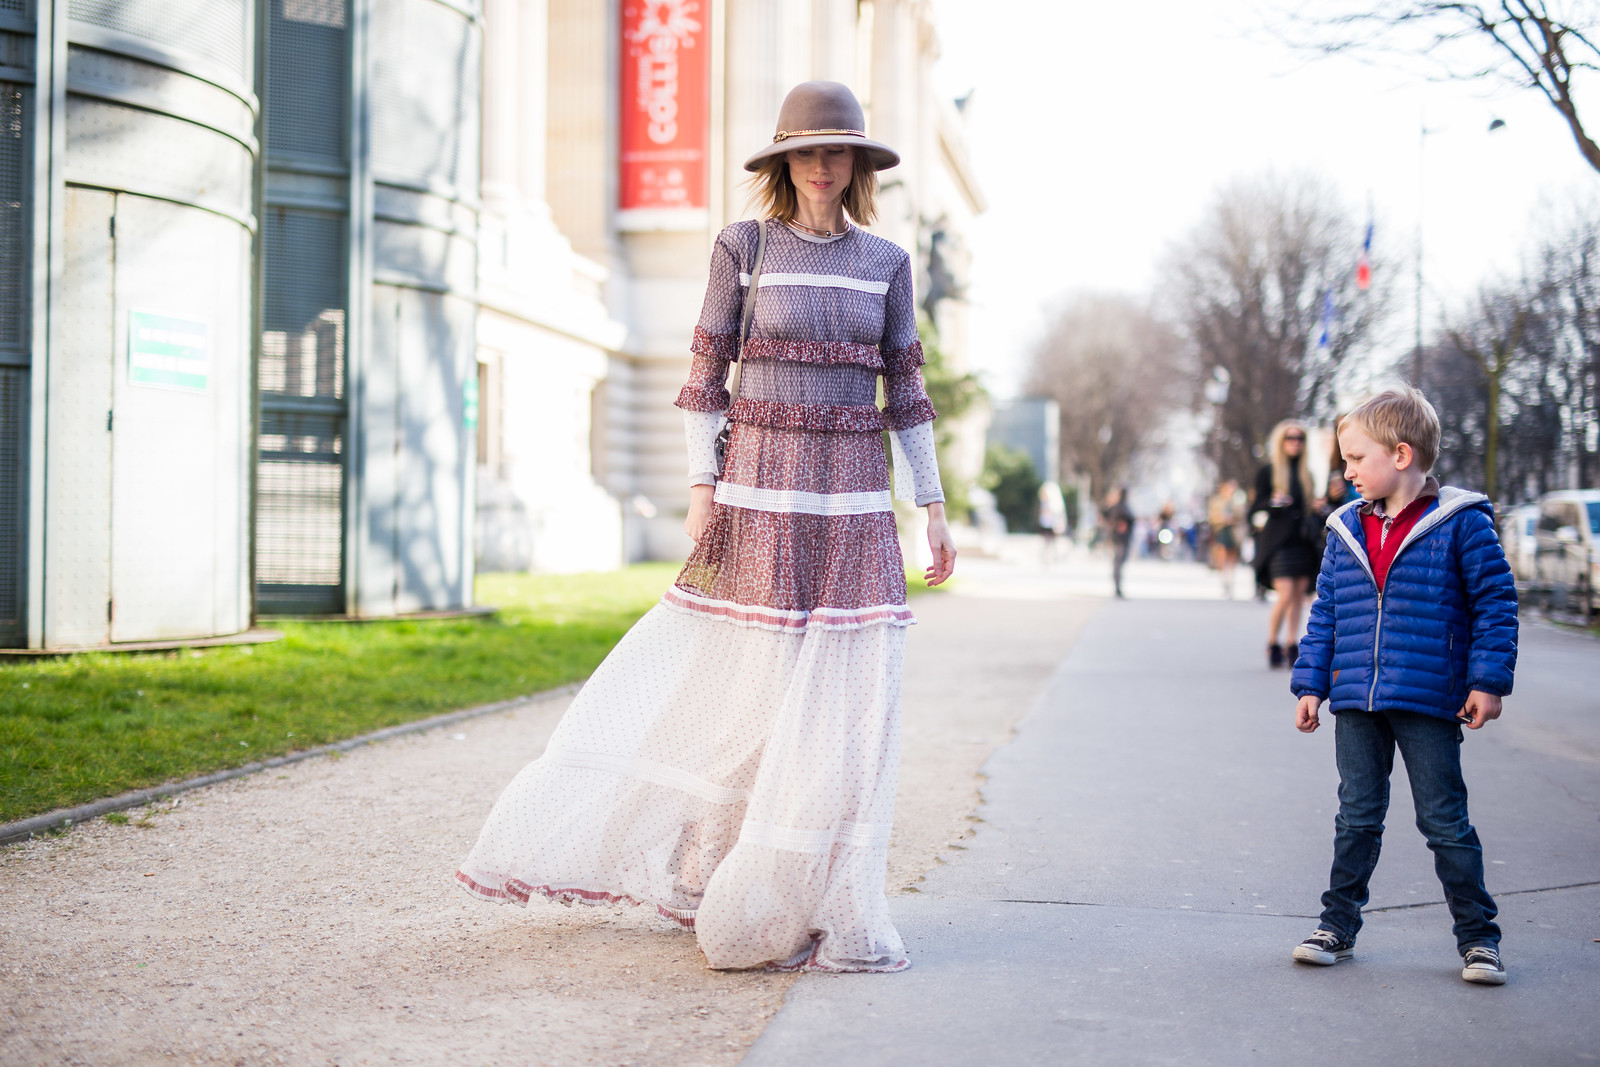 Street Style - Anya Ziourova, Paris Fashion Week